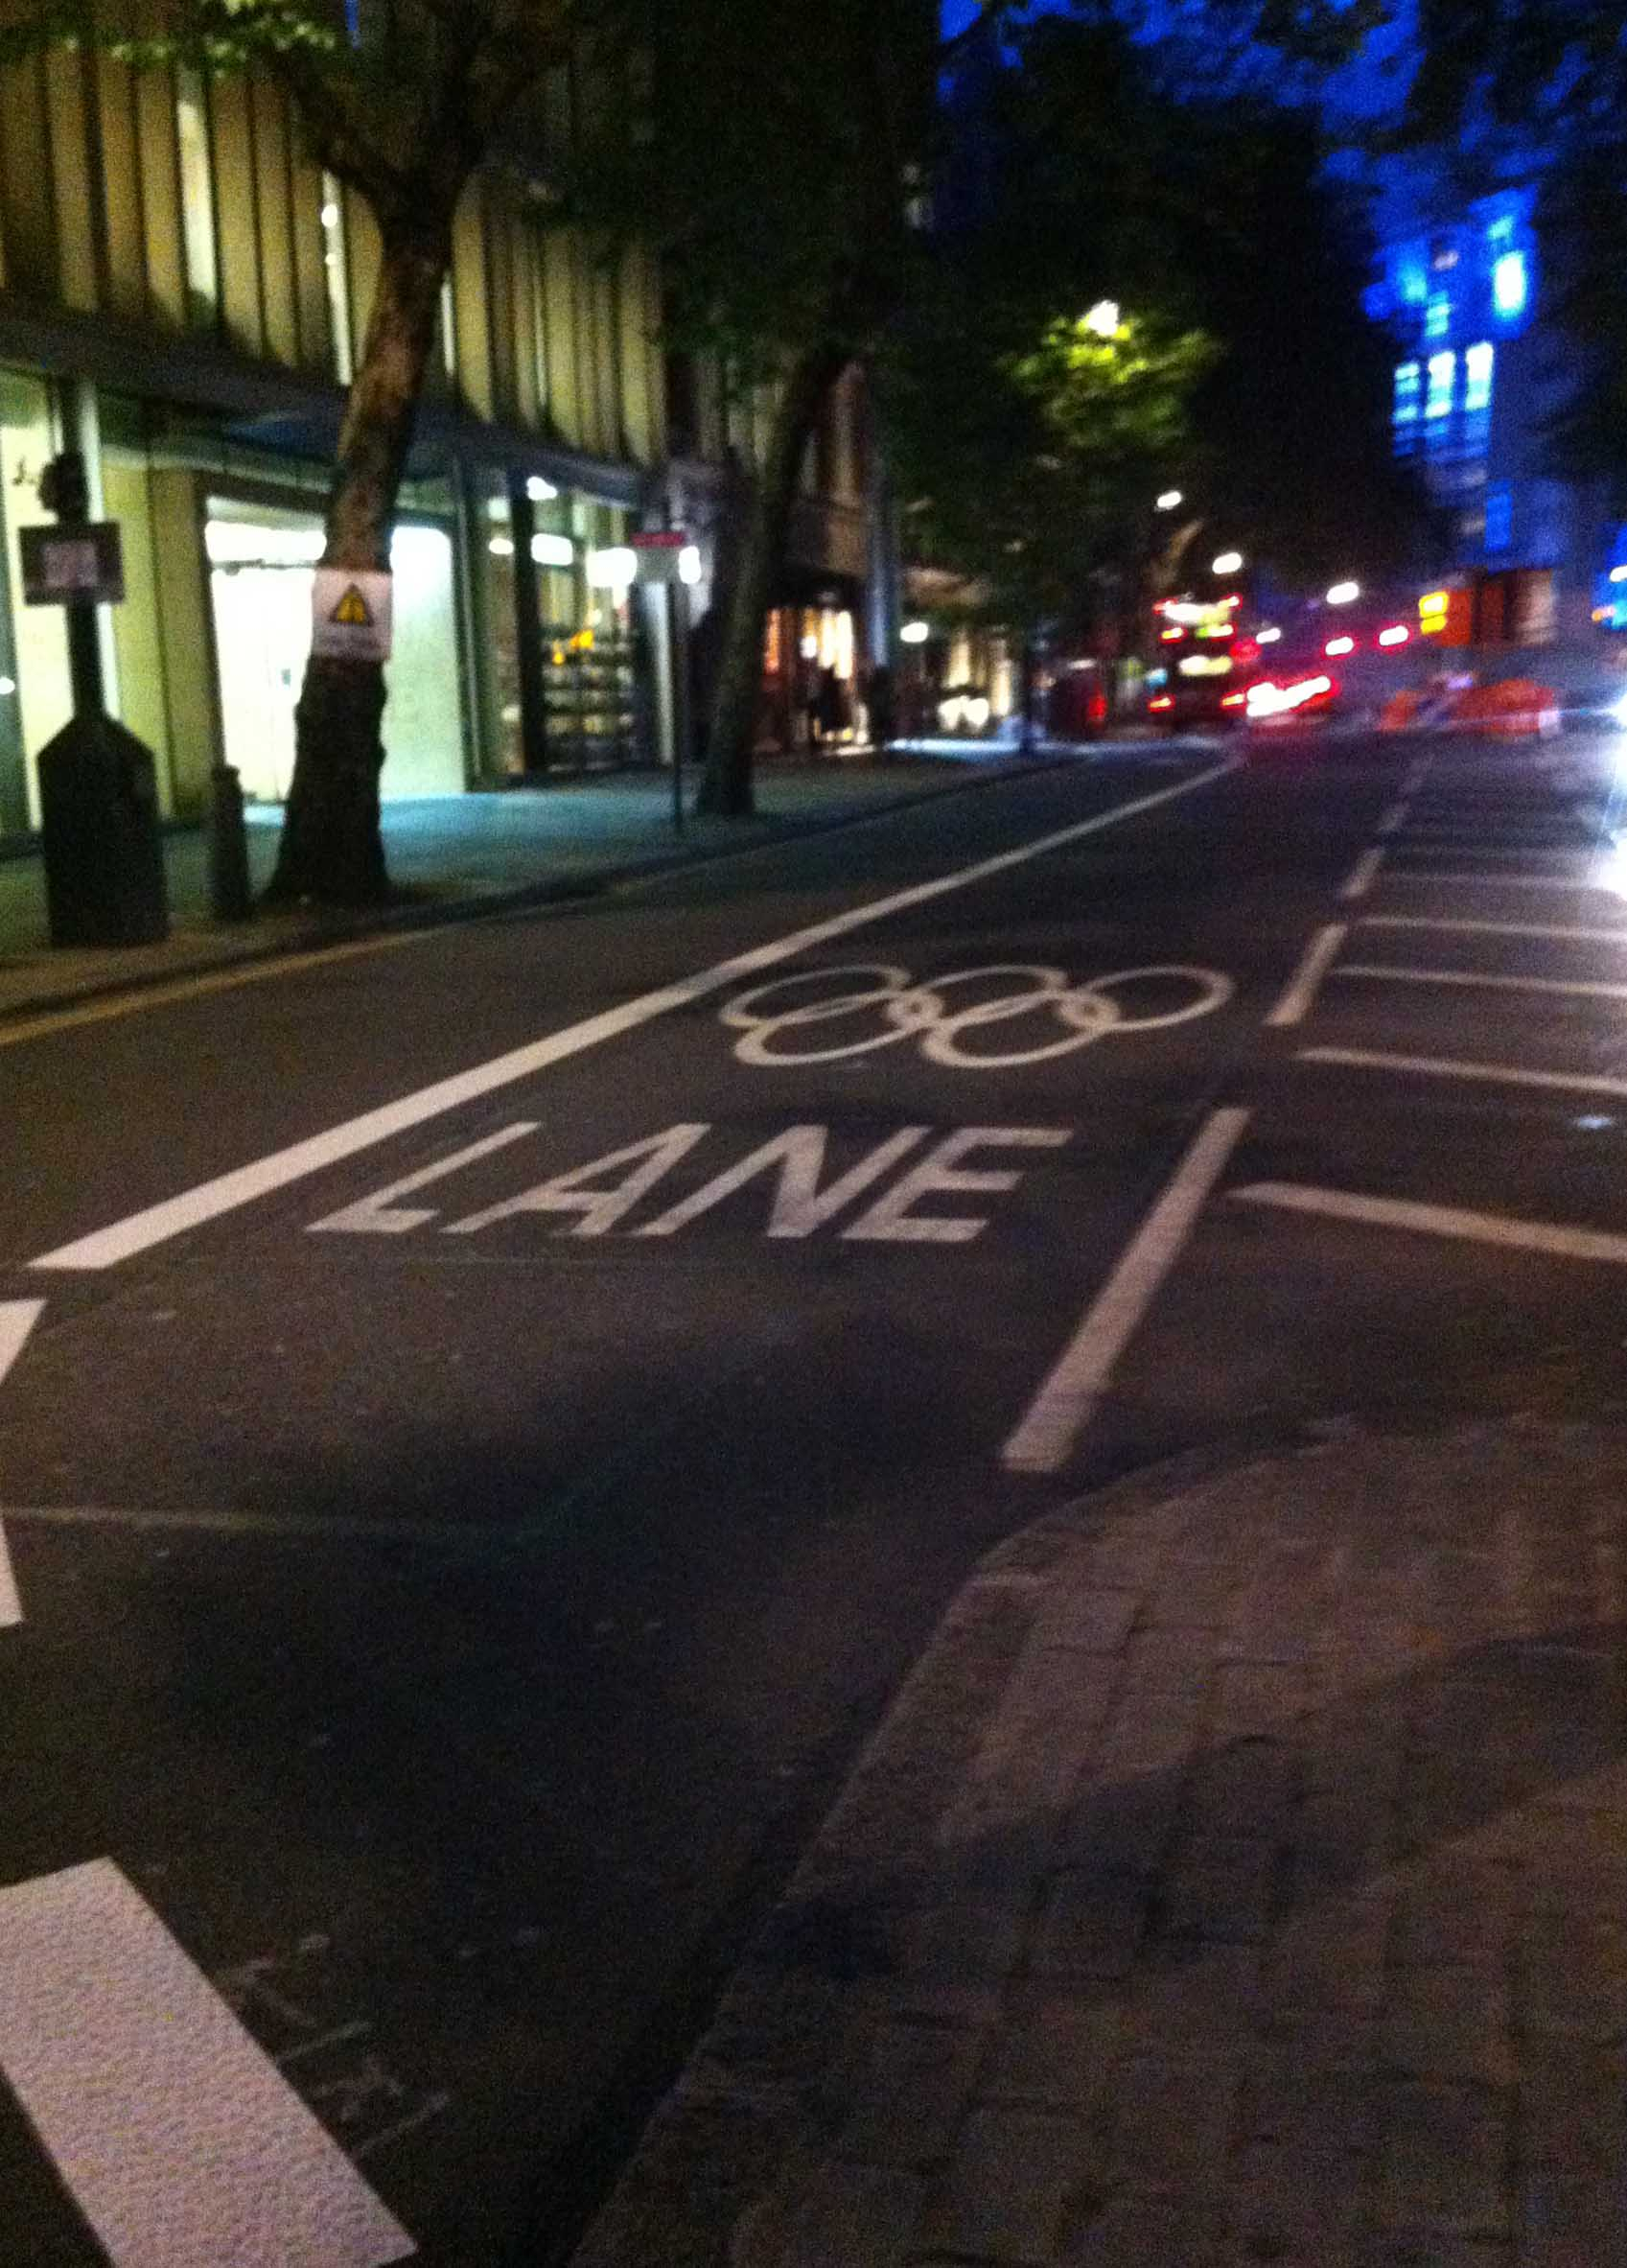 Road lane marked with Olympic rings